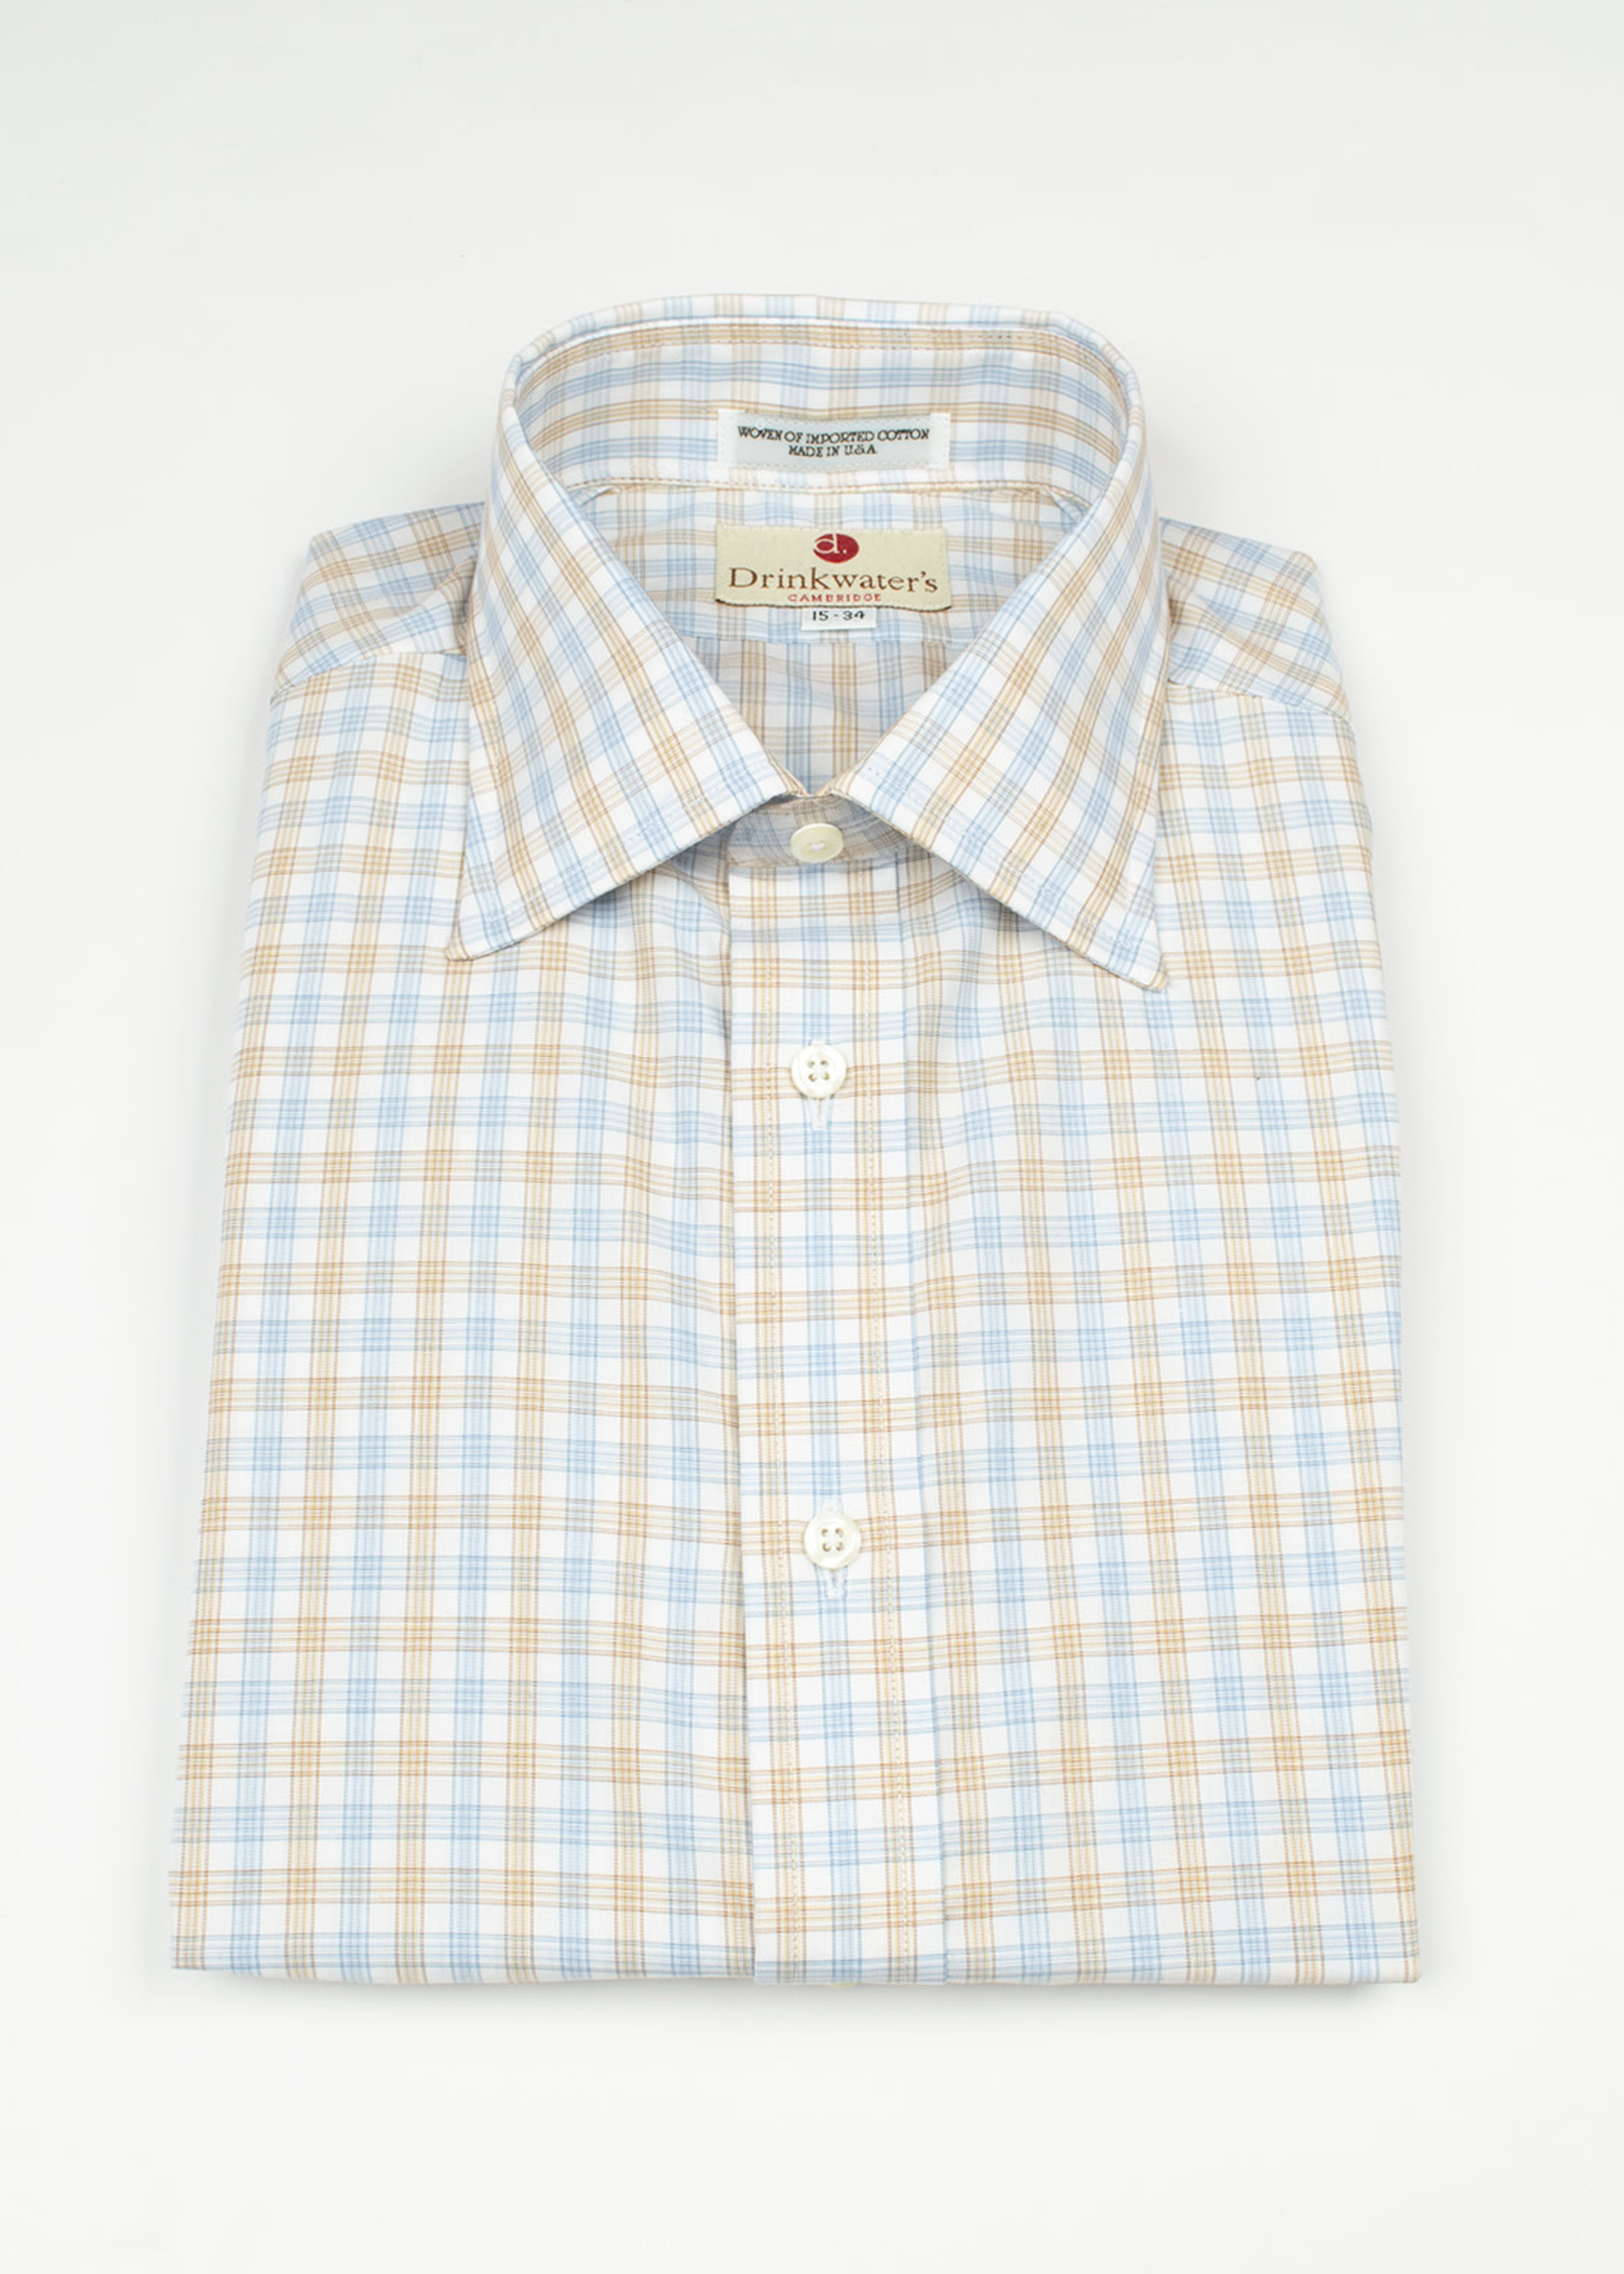 Blue/Tan Tattersall Spread Collar  by Drinkwater's